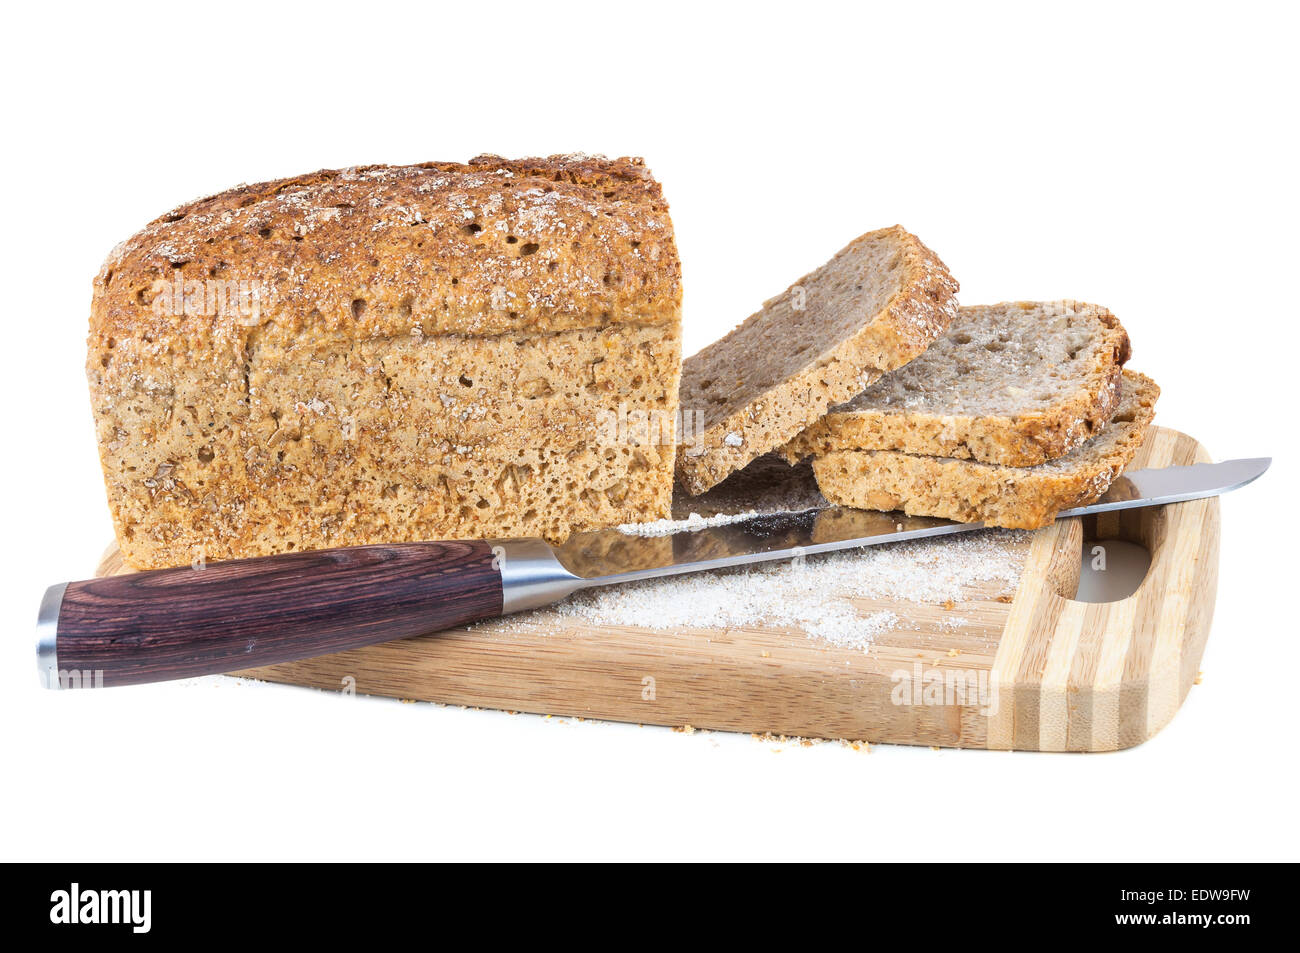 Cut Wholemeal Bread And Knife On A Chopping Board Isolated